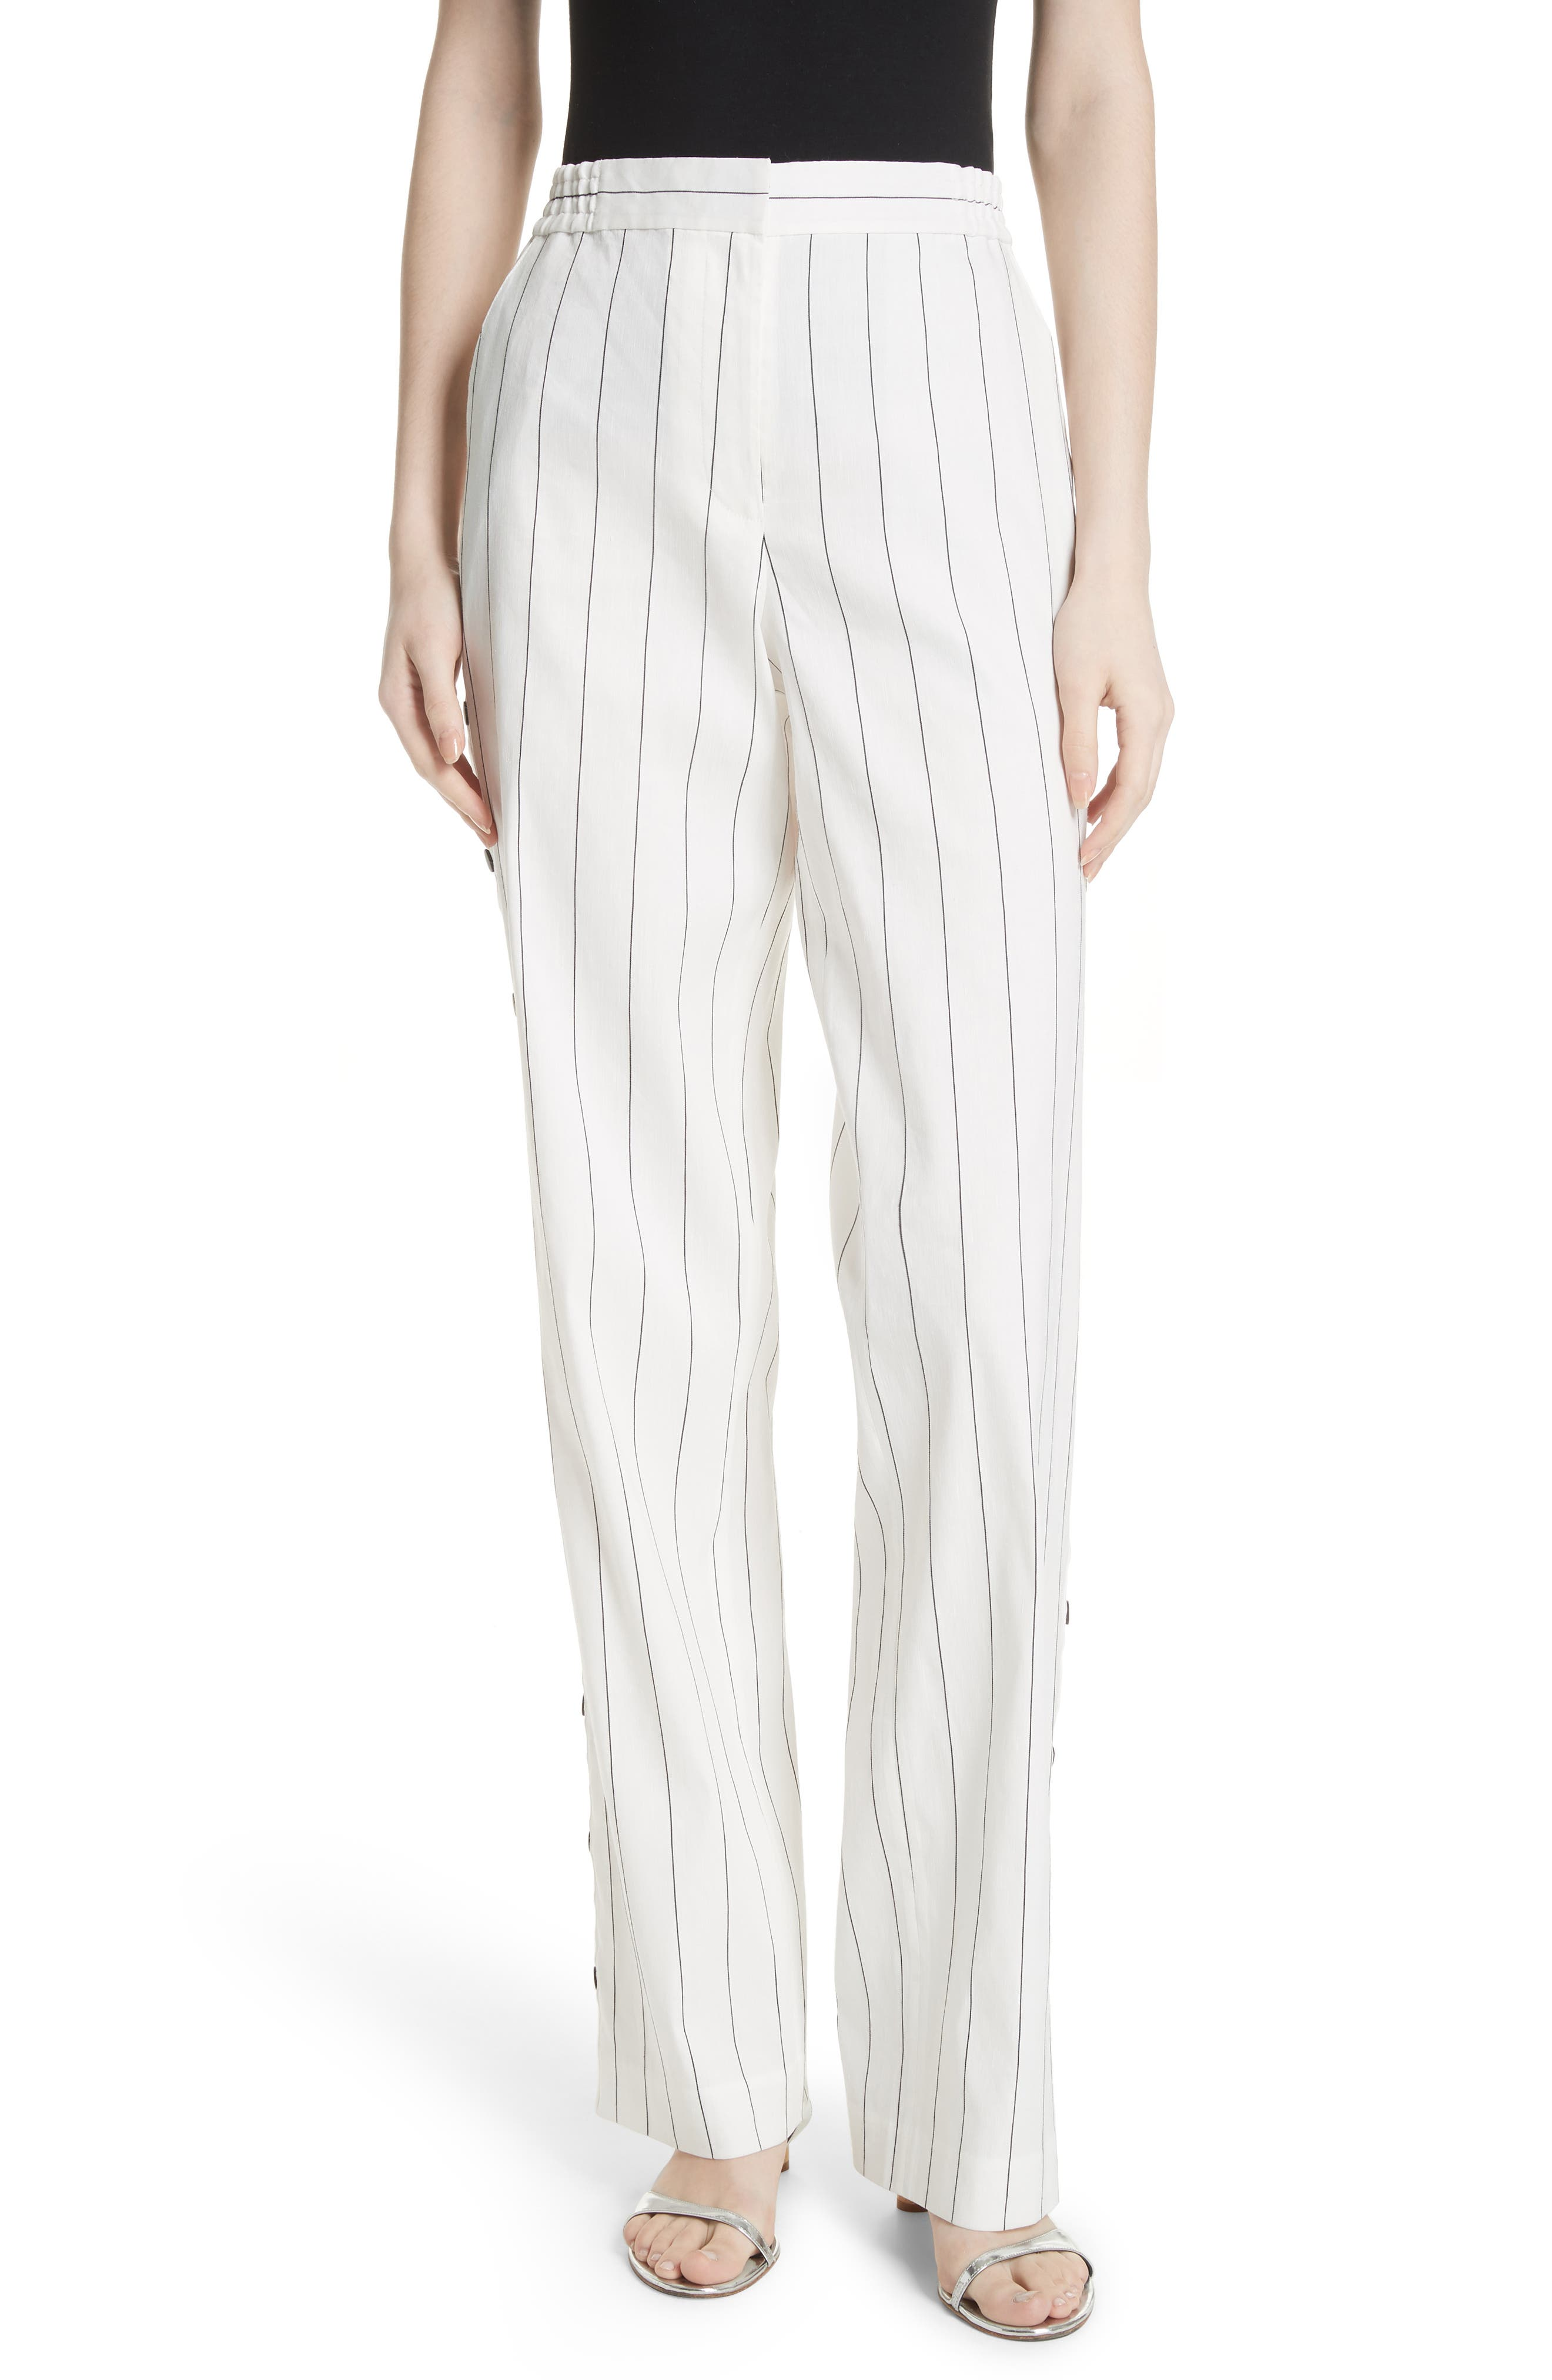 Snap Side Stripe Pants,                             Main thumbnail 1, color,                             907